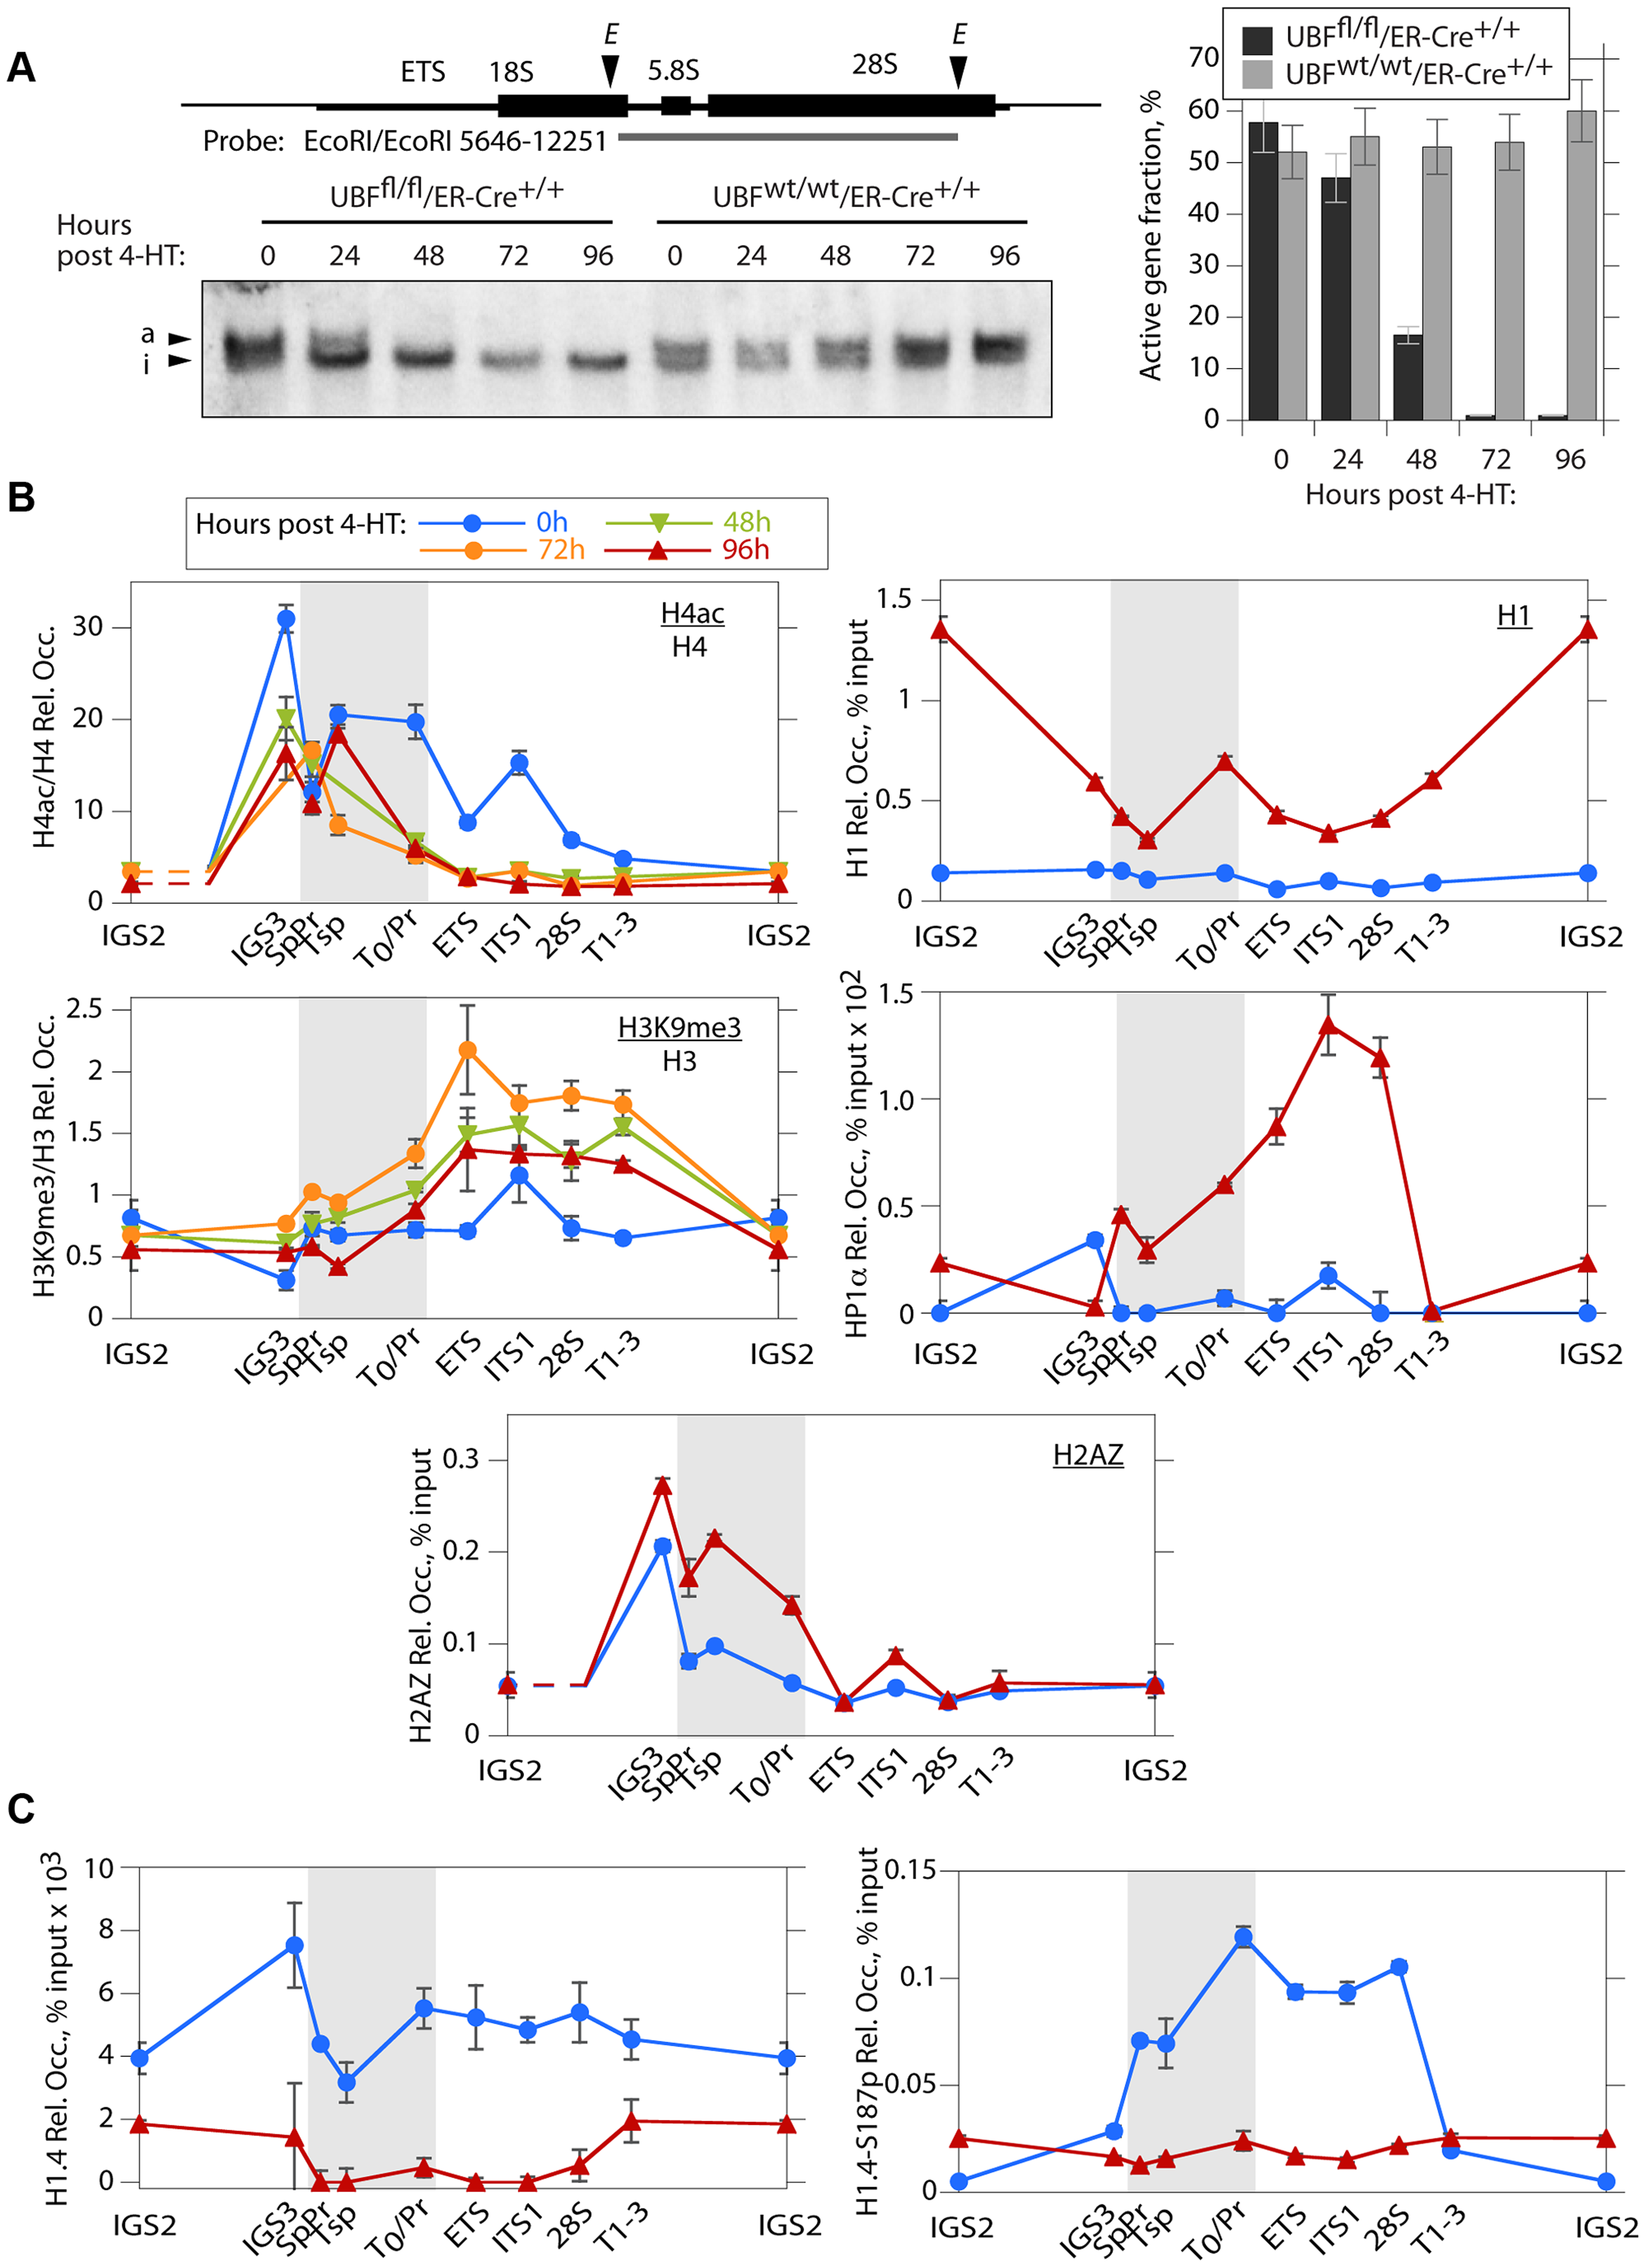 The rDNA chromatin is extensively remodelled during UBF elimination.